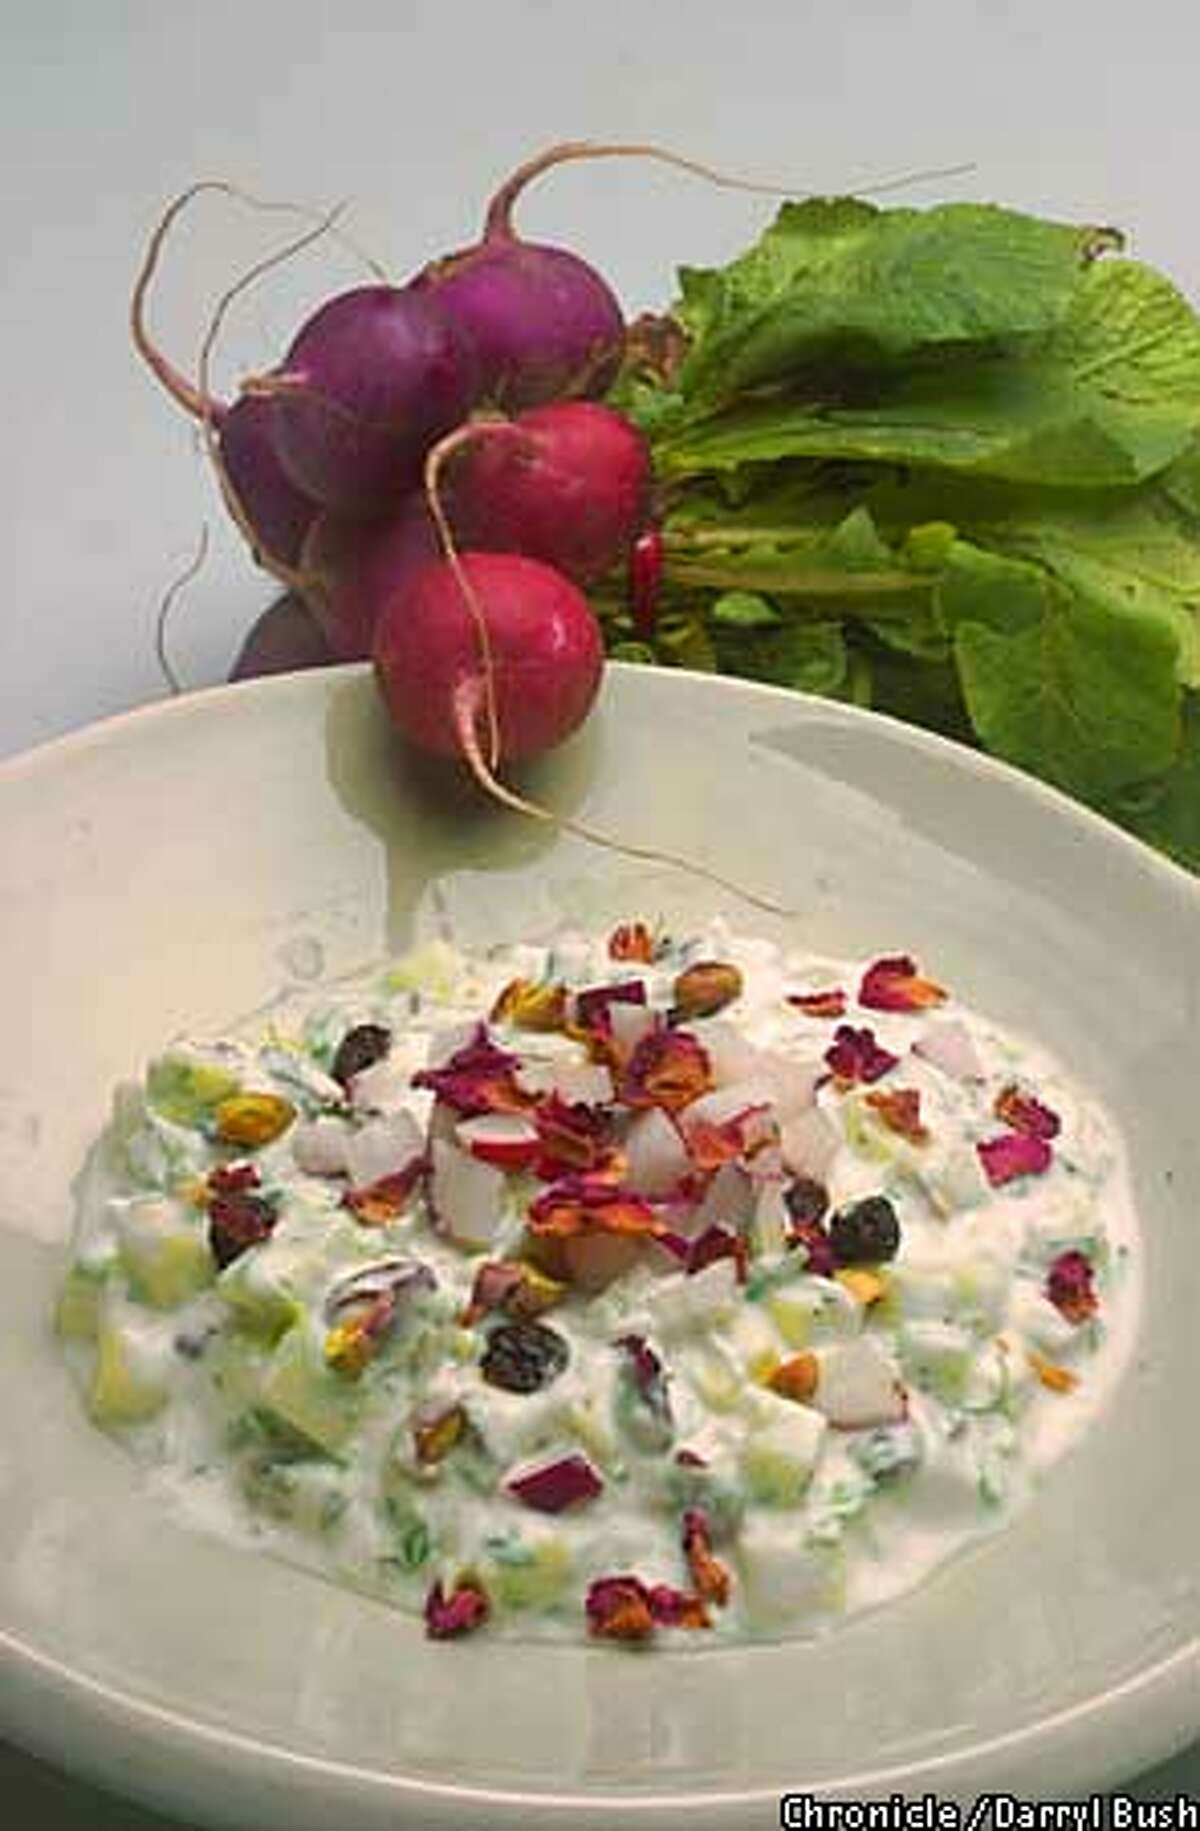 Yogurt and cucumber salad with rose petals dish. Chronicle Photo by Darryl Bush Food Styling by Noel Advincula